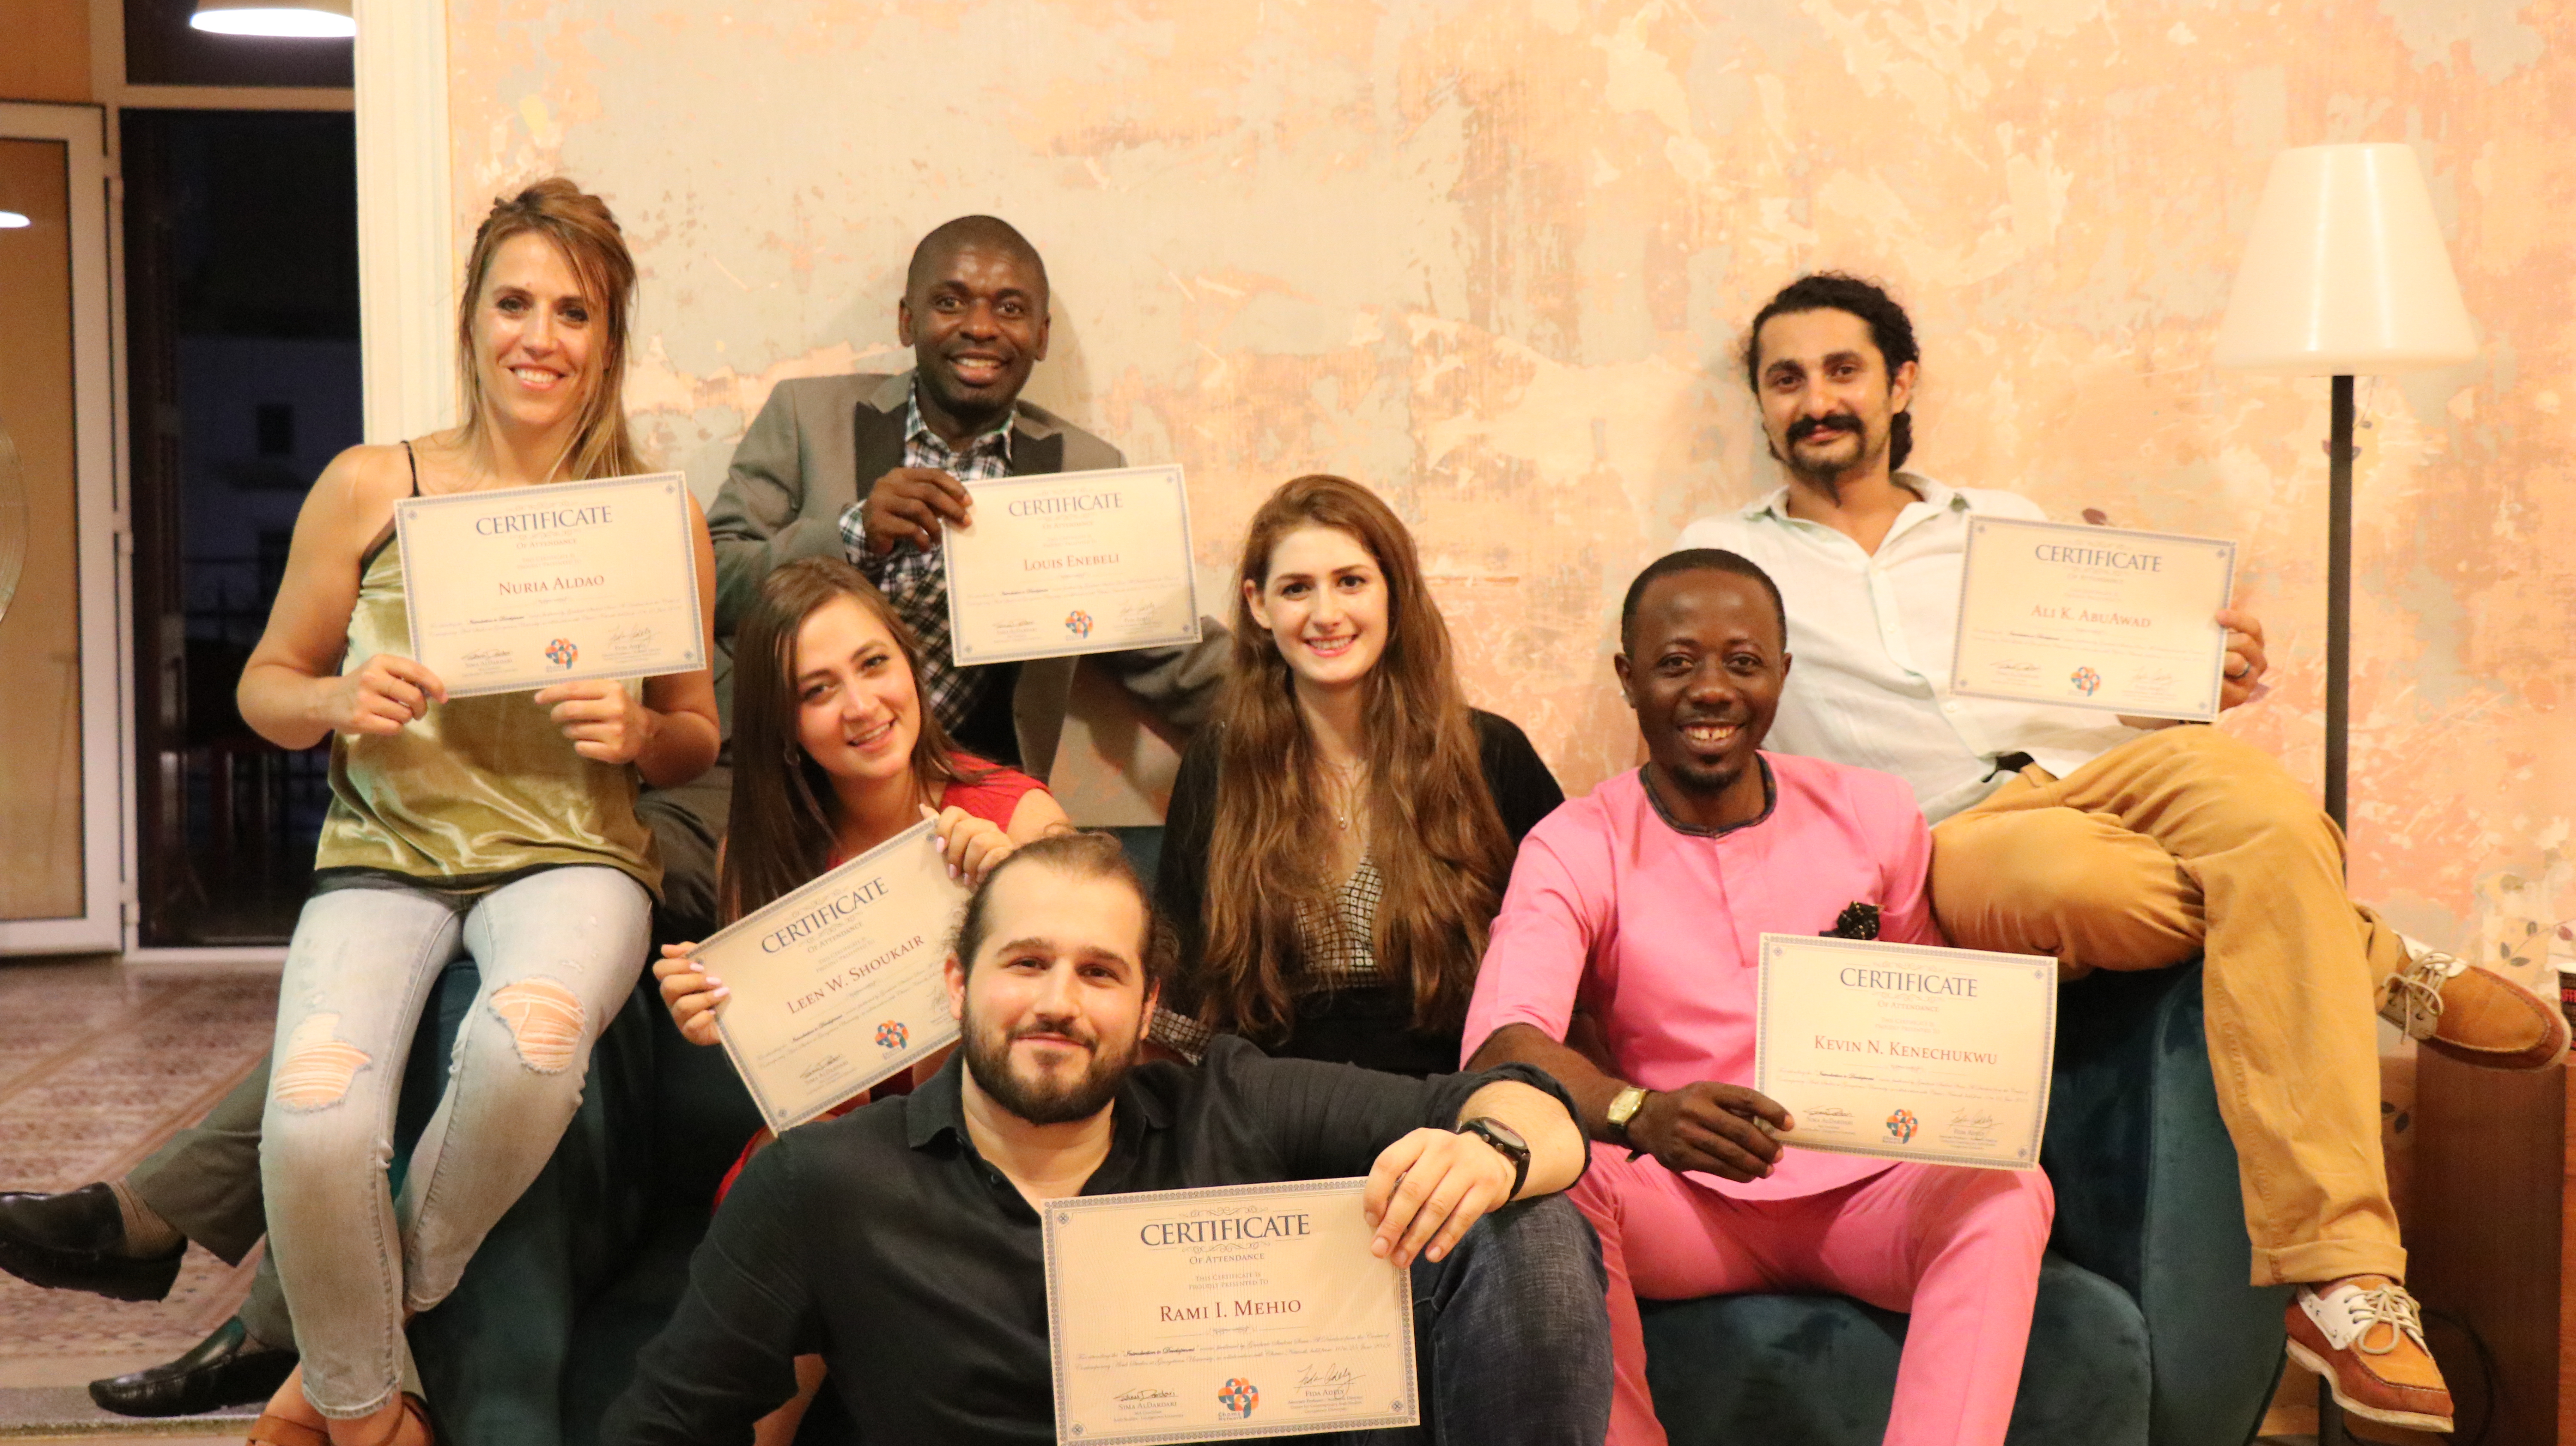 Sima (center) with her students after distributing their course completion certificates. (L to R) Nuria Aldao, Louis Enebeli, Leen Shoukair, Rami Mehio, Kevin Kenechukwu, Ali AbuAwad, and Nour Nahhas (not pictured). Photo Credit: Anthony Zahr, Chams Network